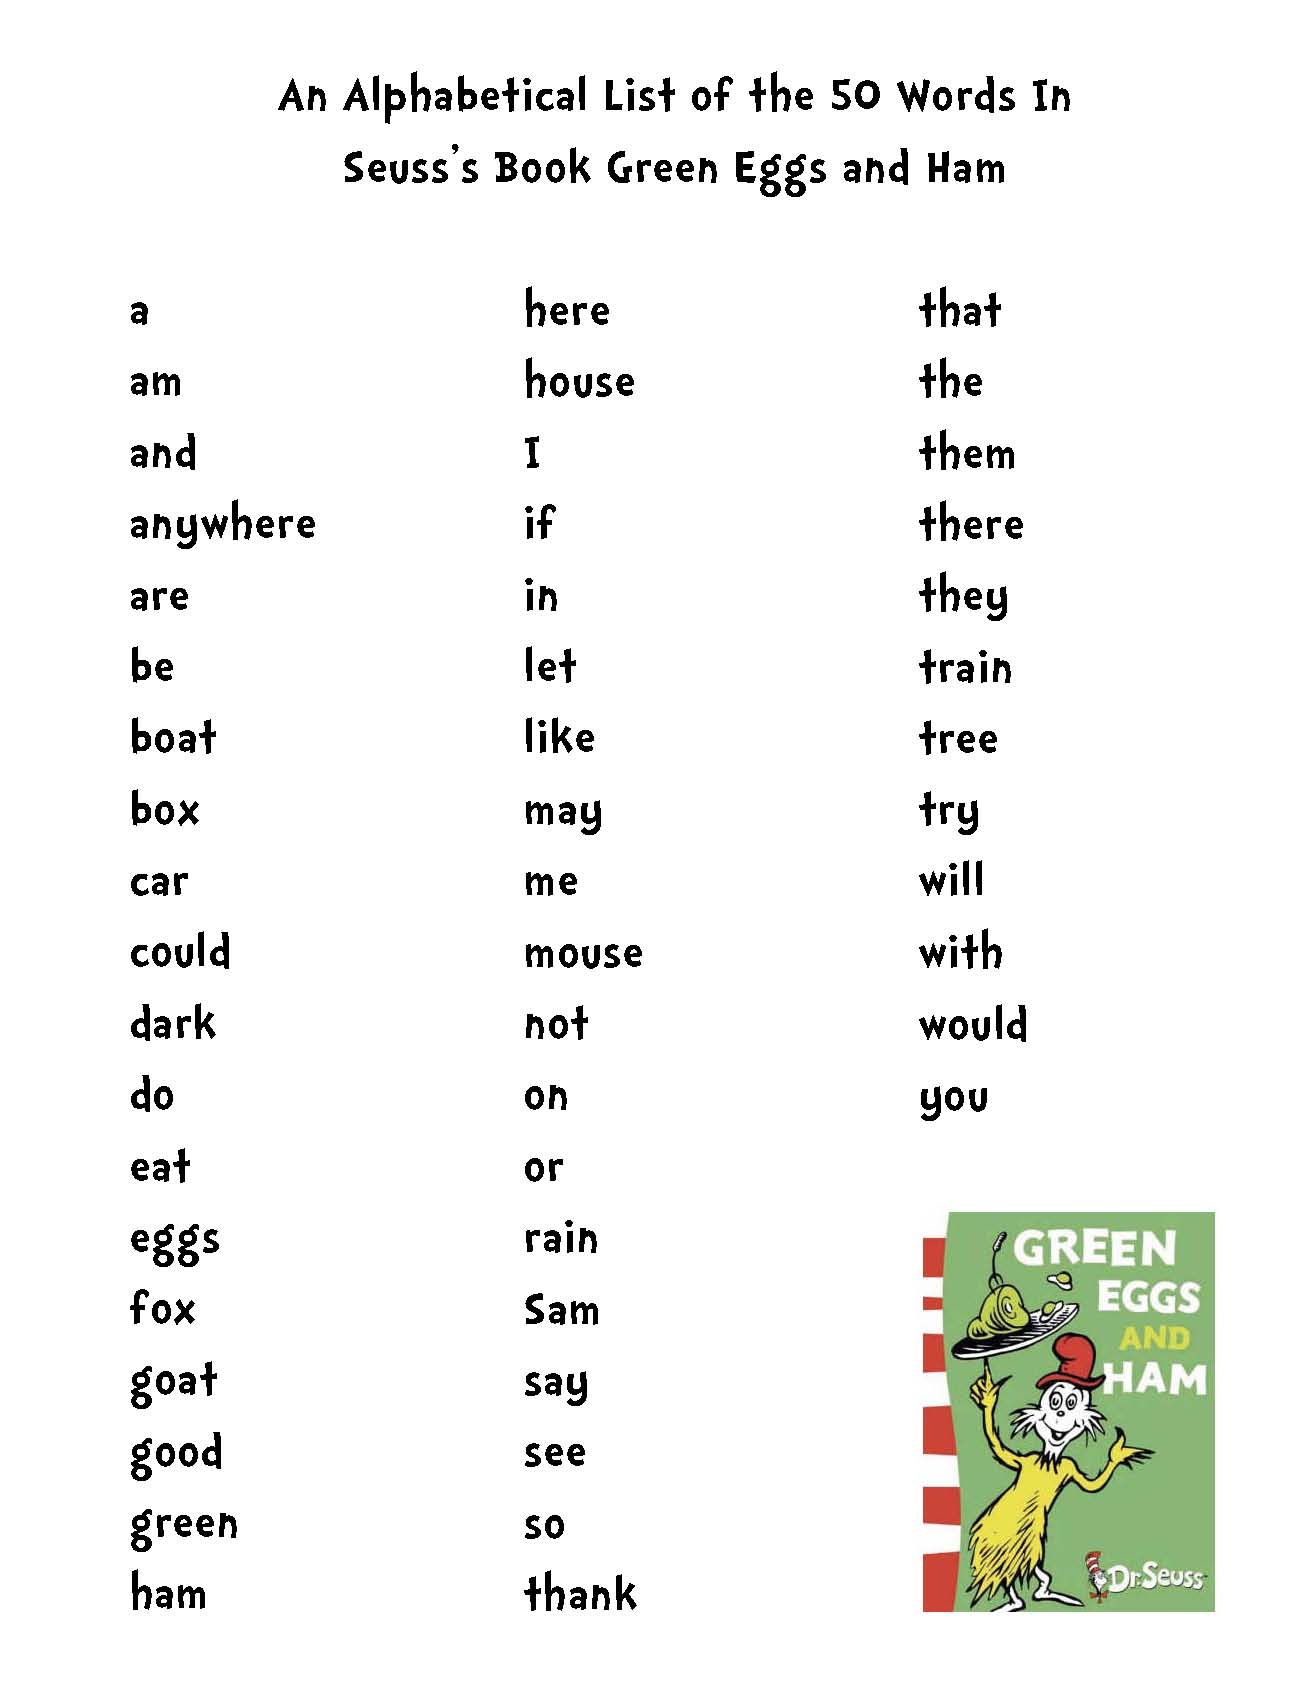 green eggs and ham activities, Daily 5 word work, daily 5 word work for Seuss, Seuss activities, a list of the 50 words in green eggs and ham, a list of words that rhyme with Sam, a list of words that rhyme with green, Dolch word lists, Dolch word activities, Dolch word games, word games, Kaboom game, vowel activities, long and short vowel sorting activities